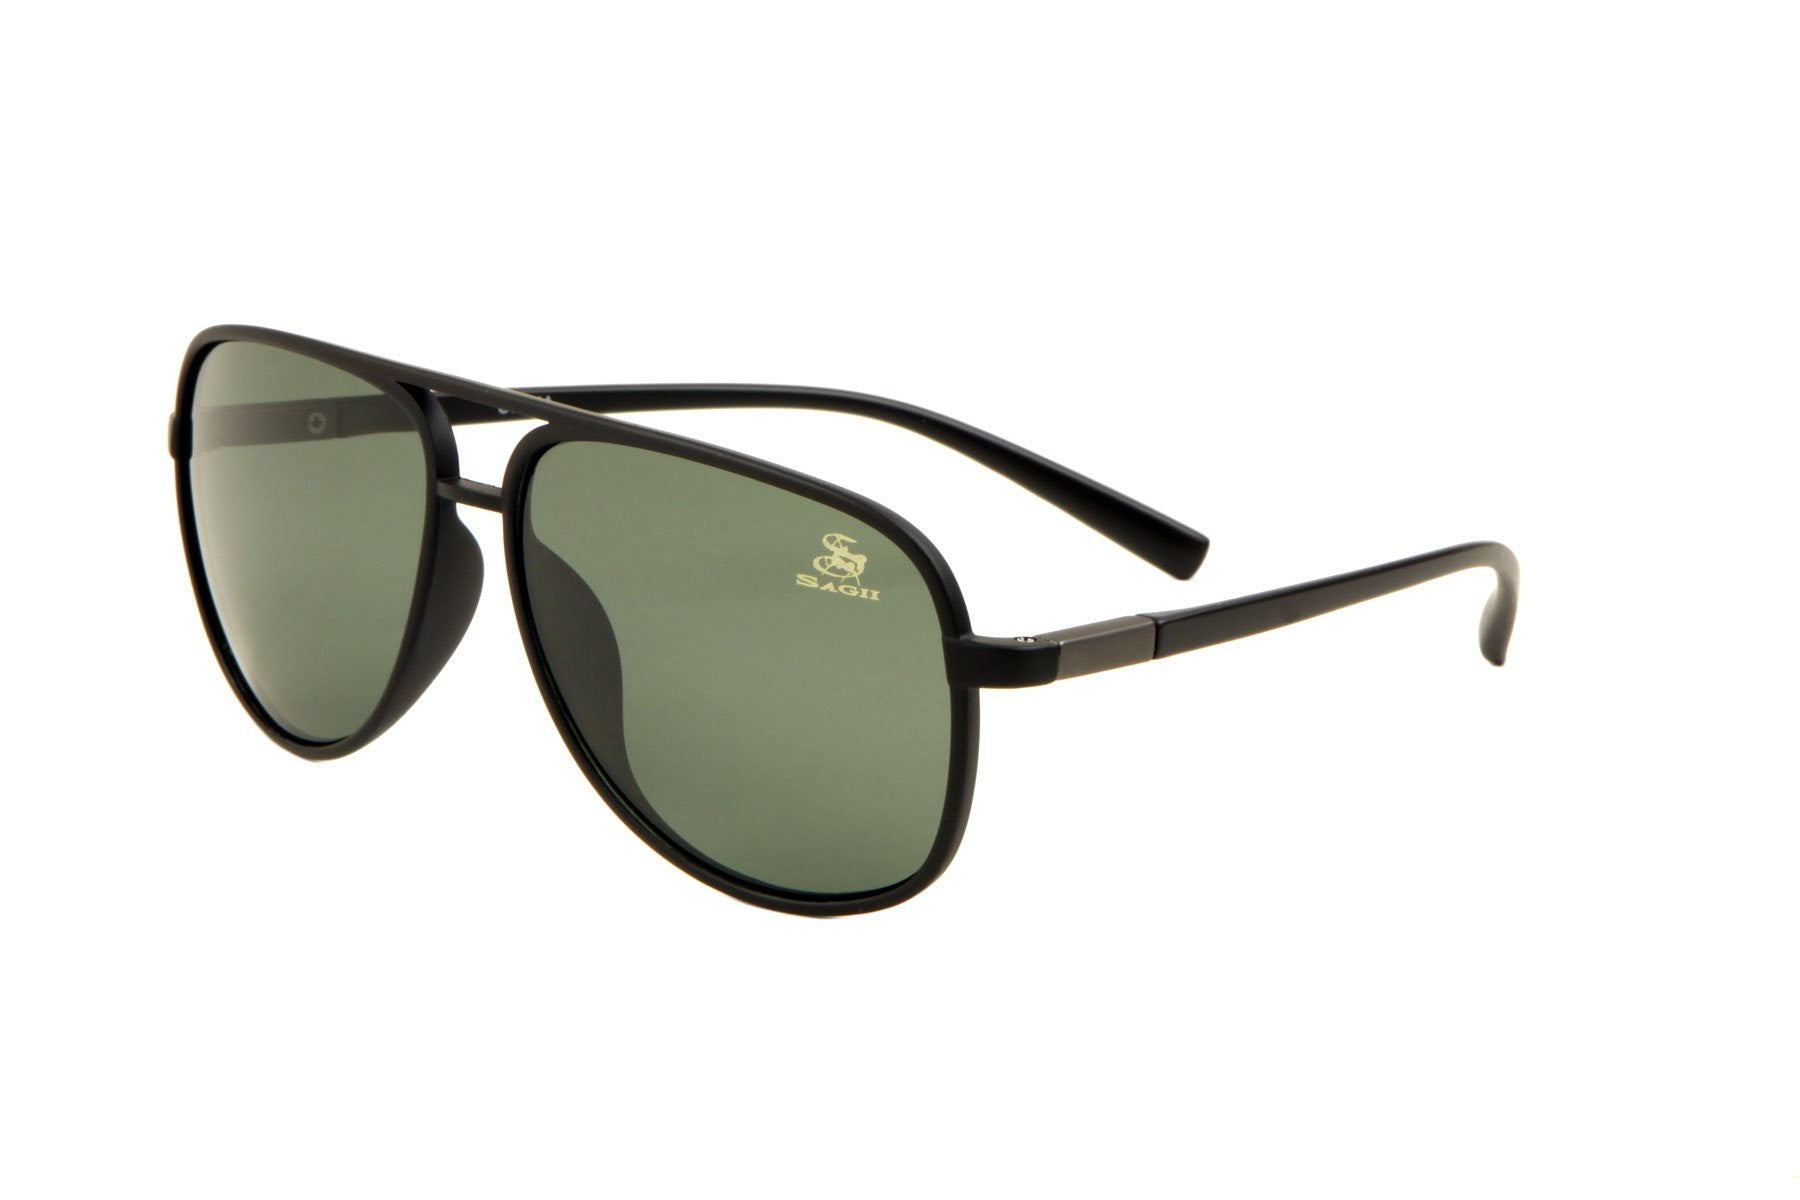 Sunglasses - SAGII POLARIZED AVIATORS Green - sagii-store